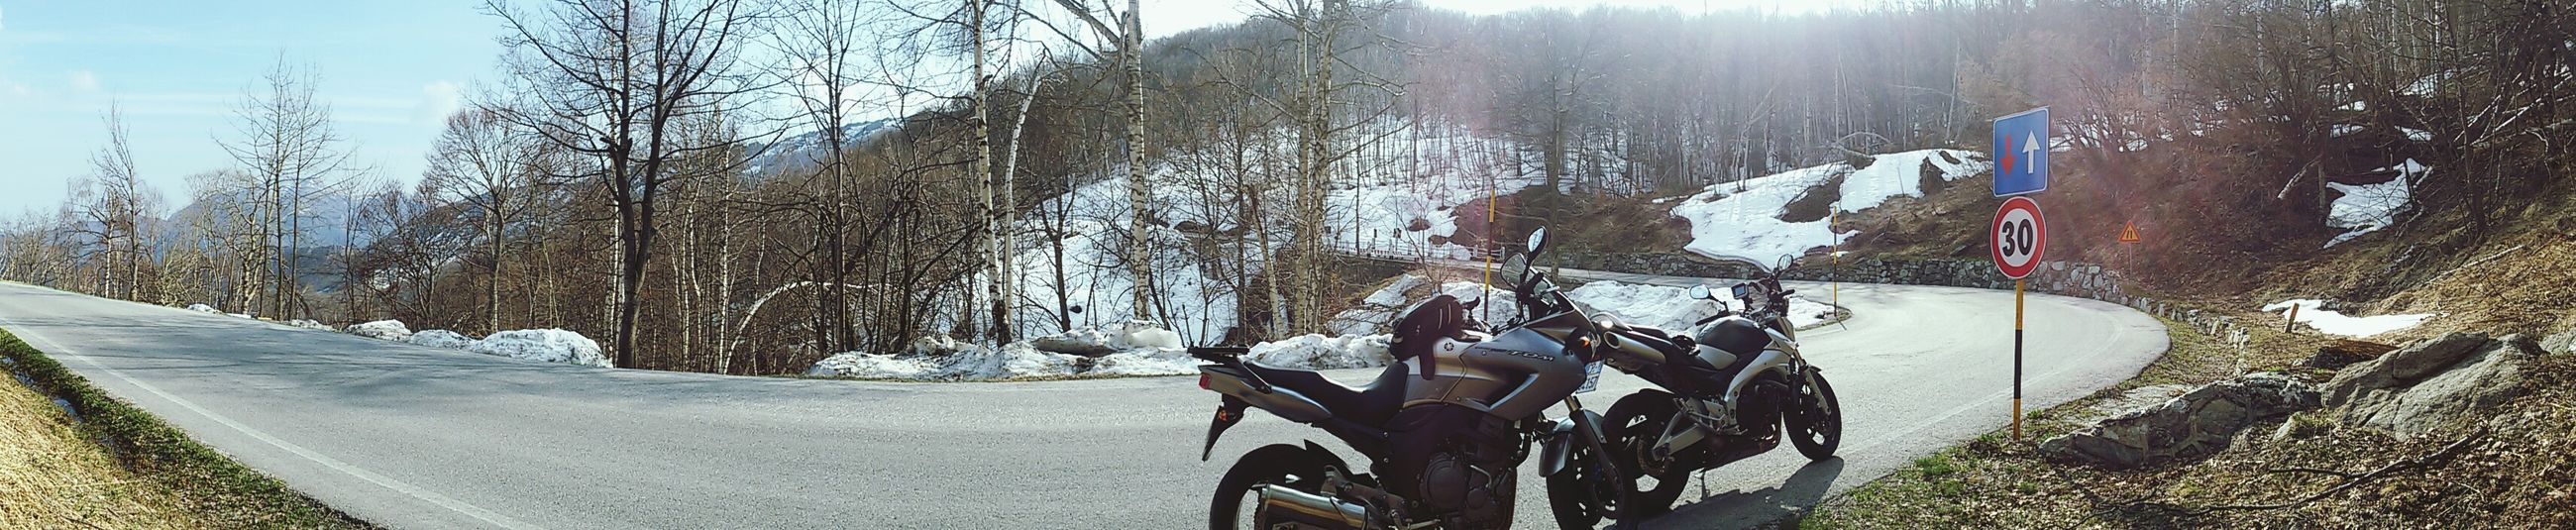 Motorcycles Enjoying Life Motorbike Snow Ride Or Die Sunday Made In Piedmont Cuneo